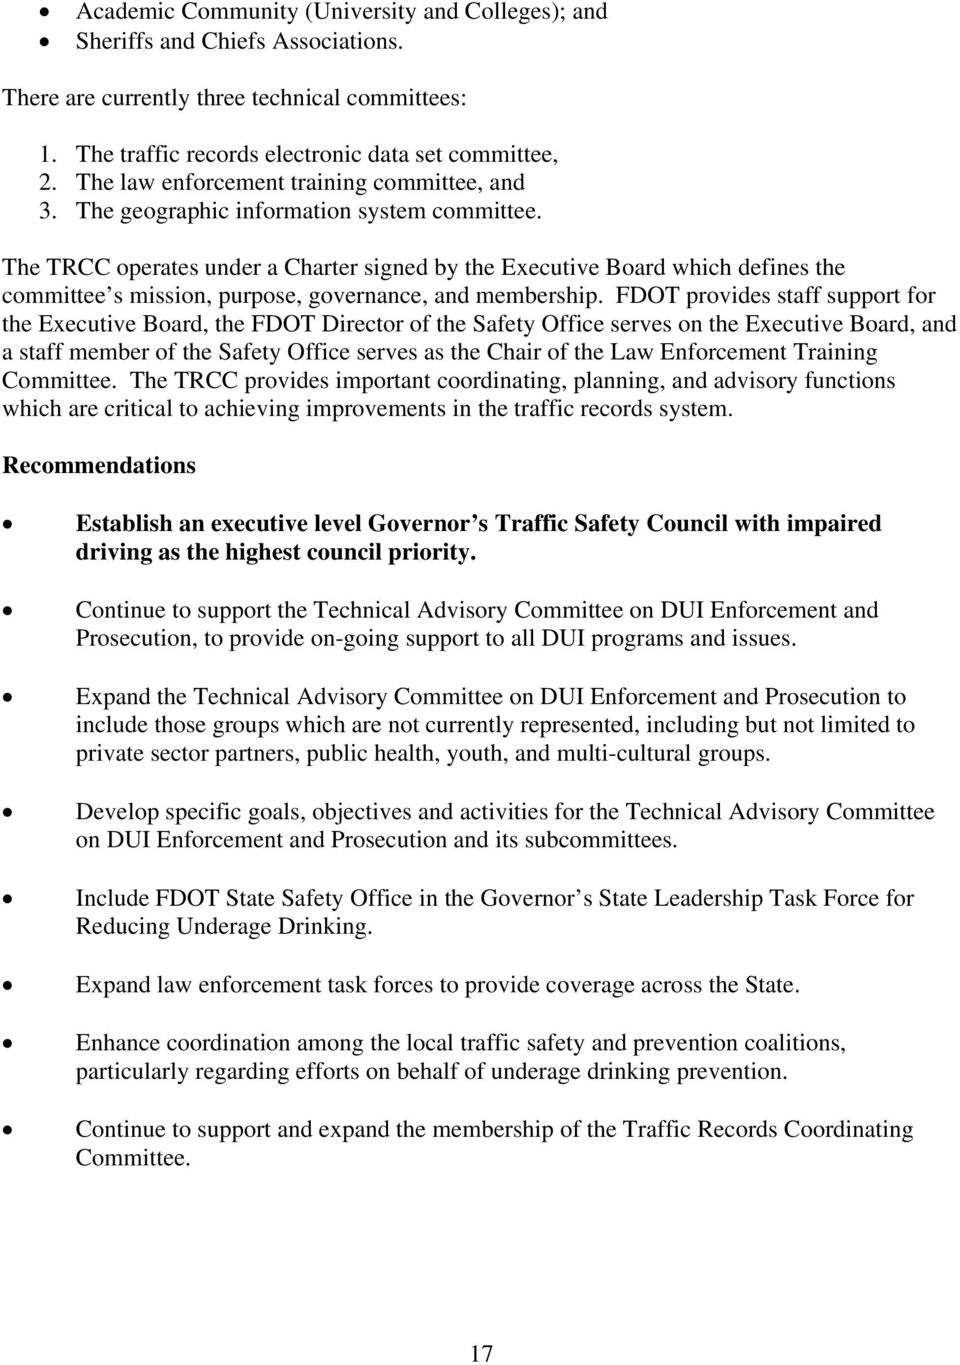 The TRCC operates under a Charter signed by the Executive Board which defines the committee s mission, purpose, governance, and membership.